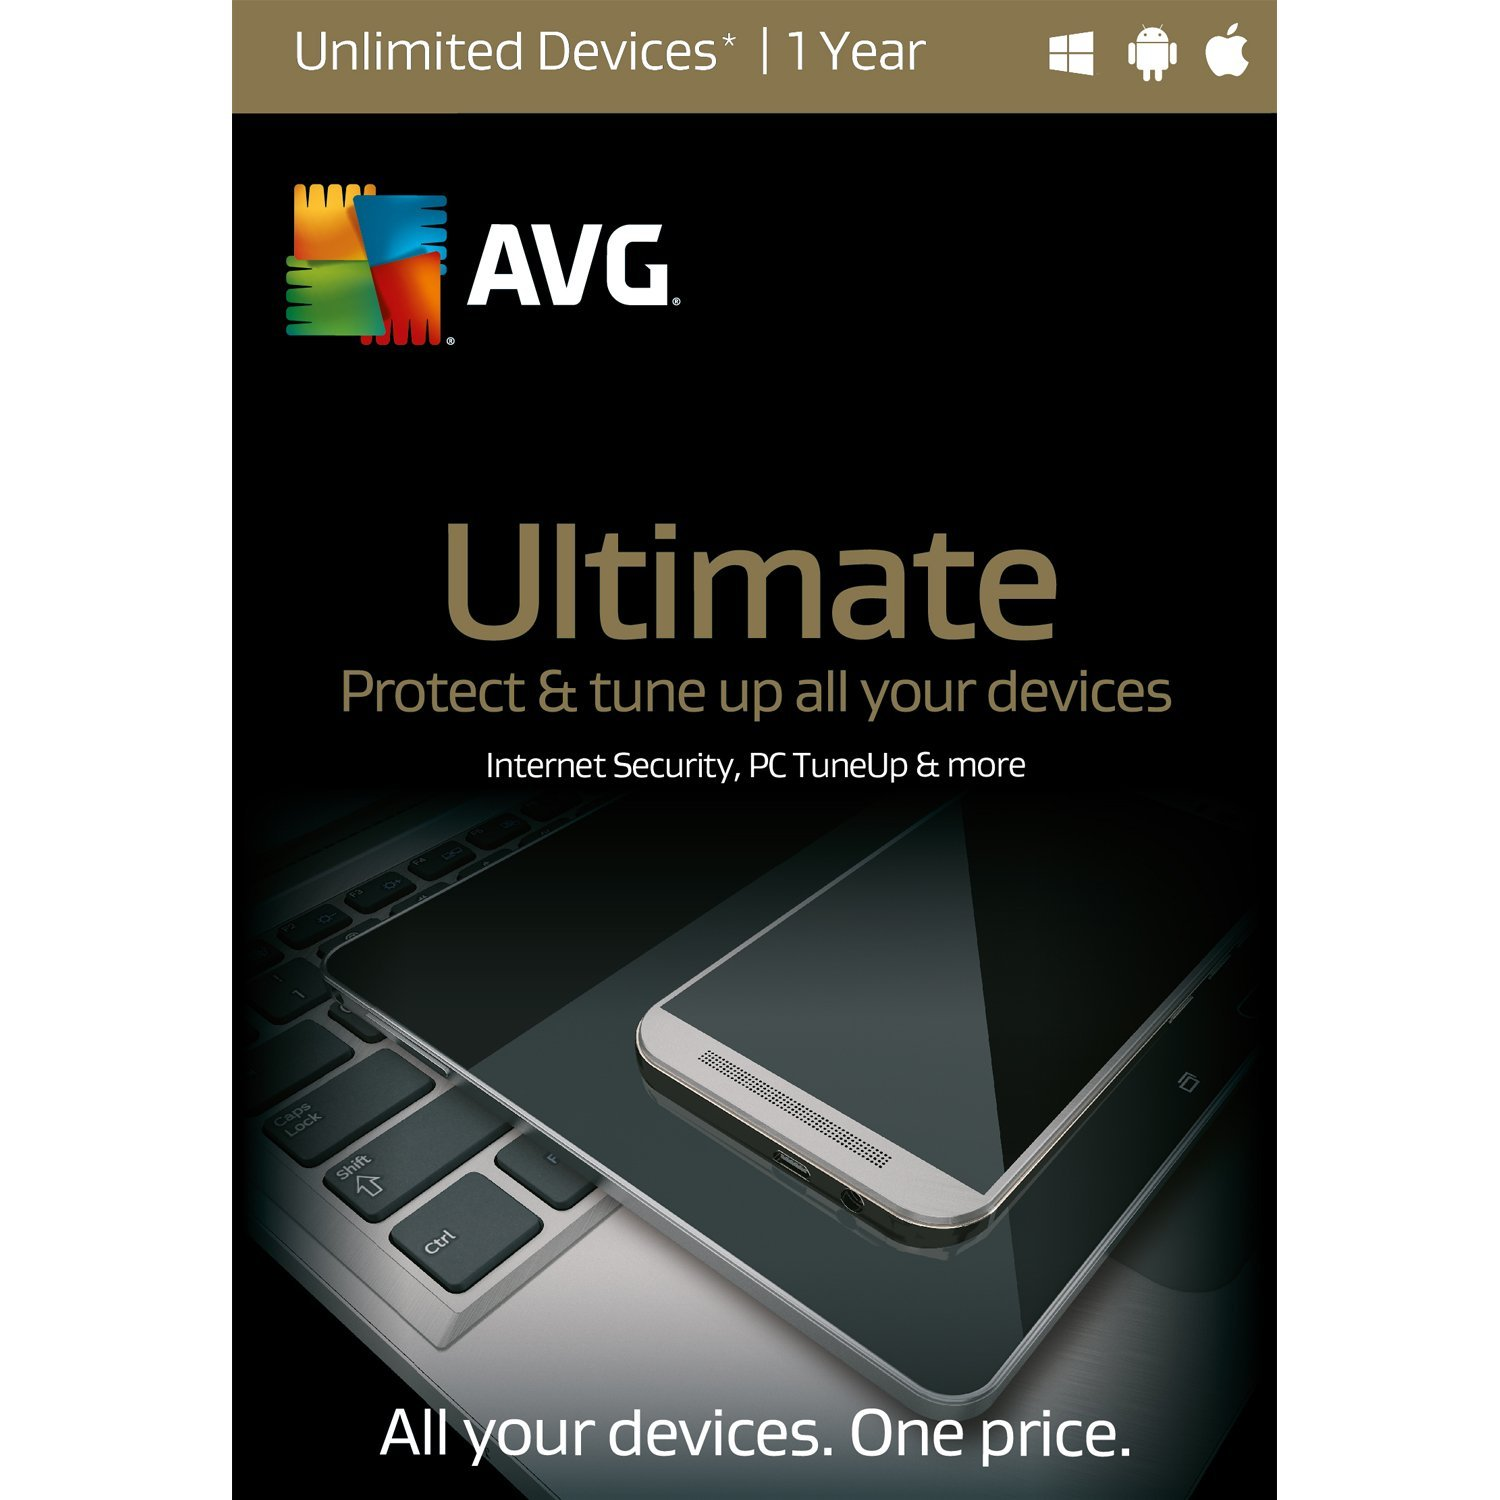 AVG Ultimate,  UNLIMITED devices  1 Year [Download]